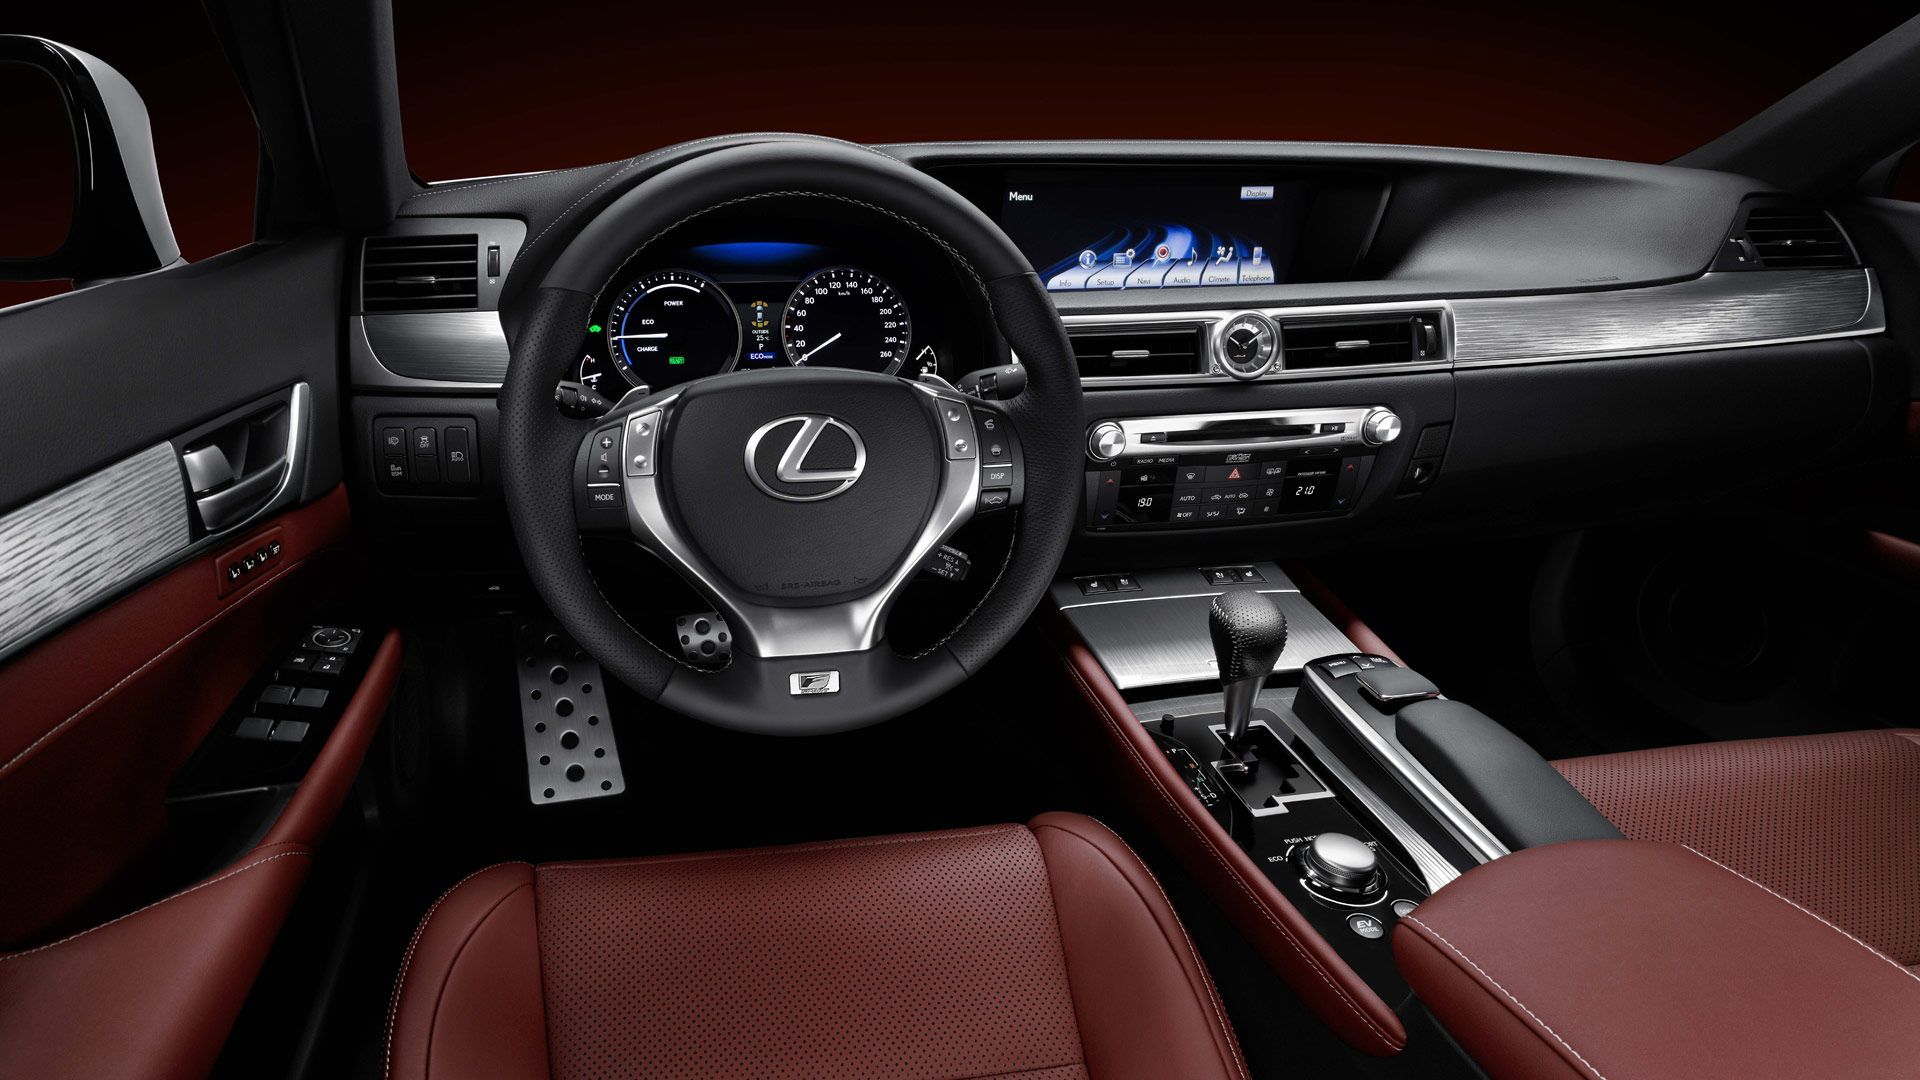 Lexus Car Interior Wallpaper HD 4776 1920x1080 - uMad.com